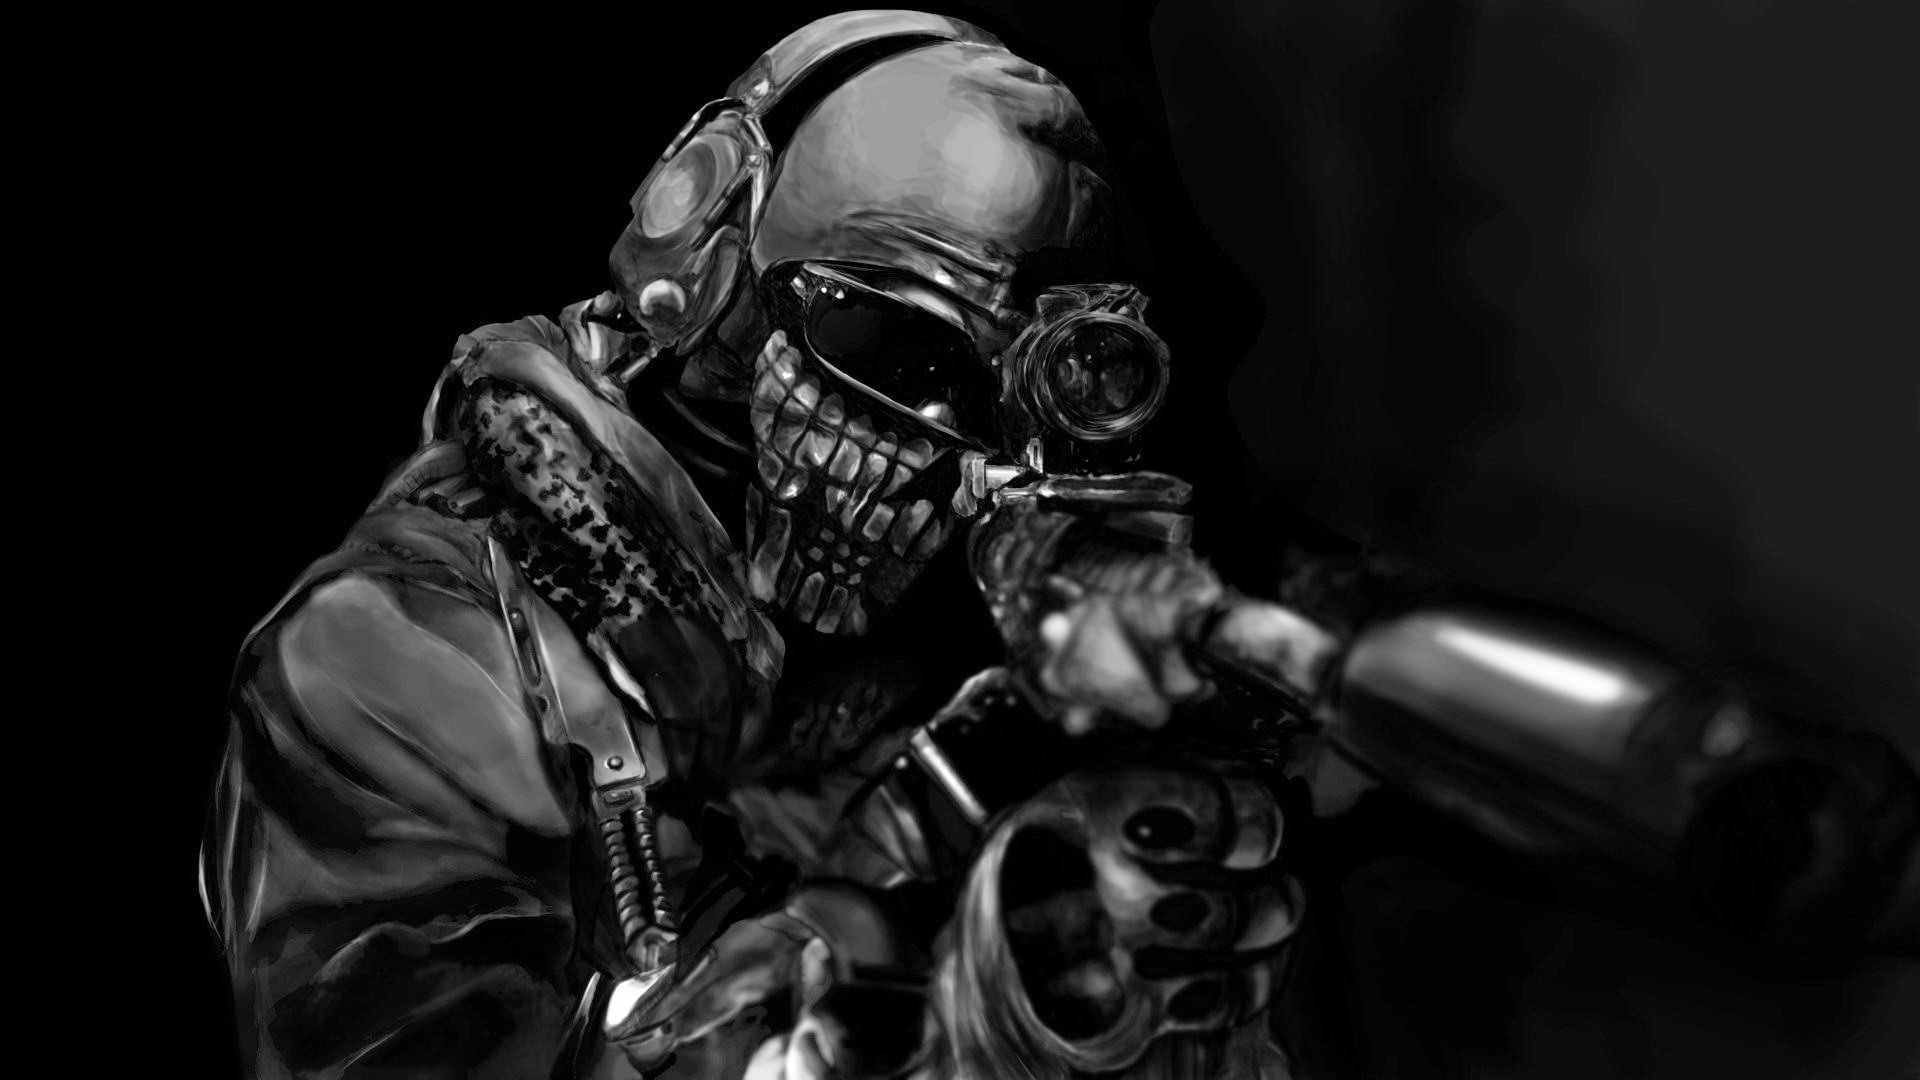 call of duty ghosts wallpapers 1920x1080 in hd call of